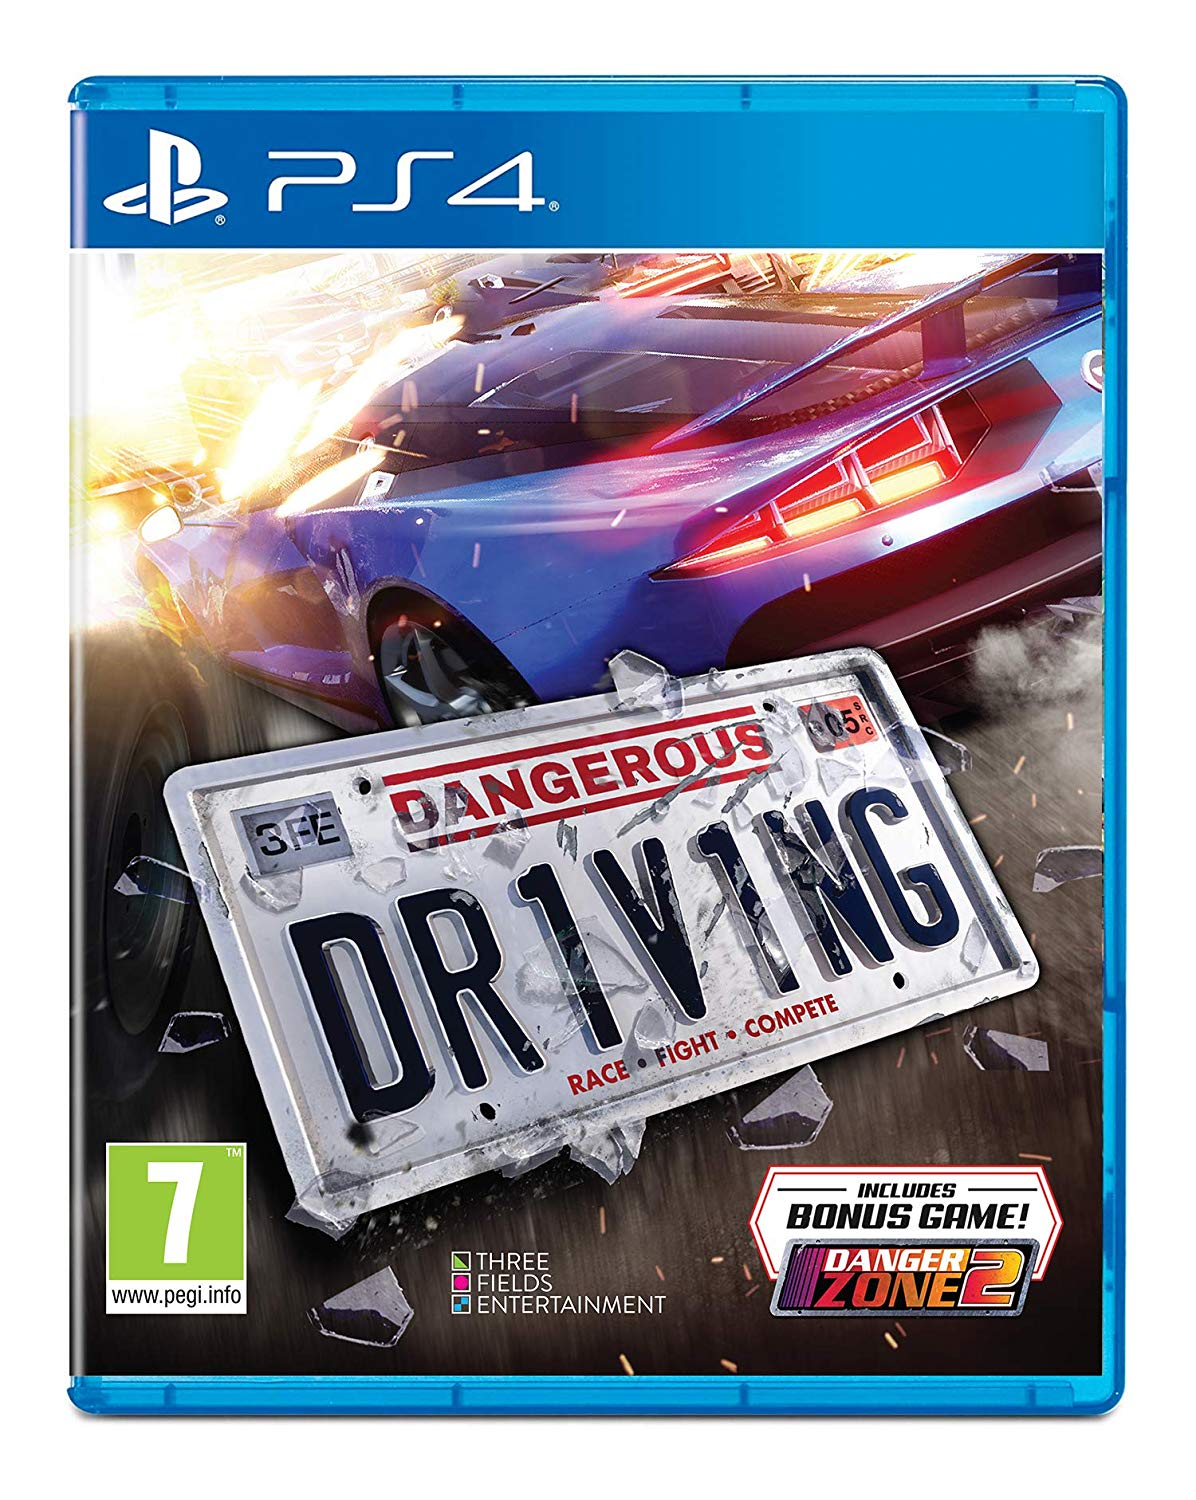 Dangerous Driving - Video Games by Maximum Games Ltd (UK Stock Account) The Chelsea Gamer